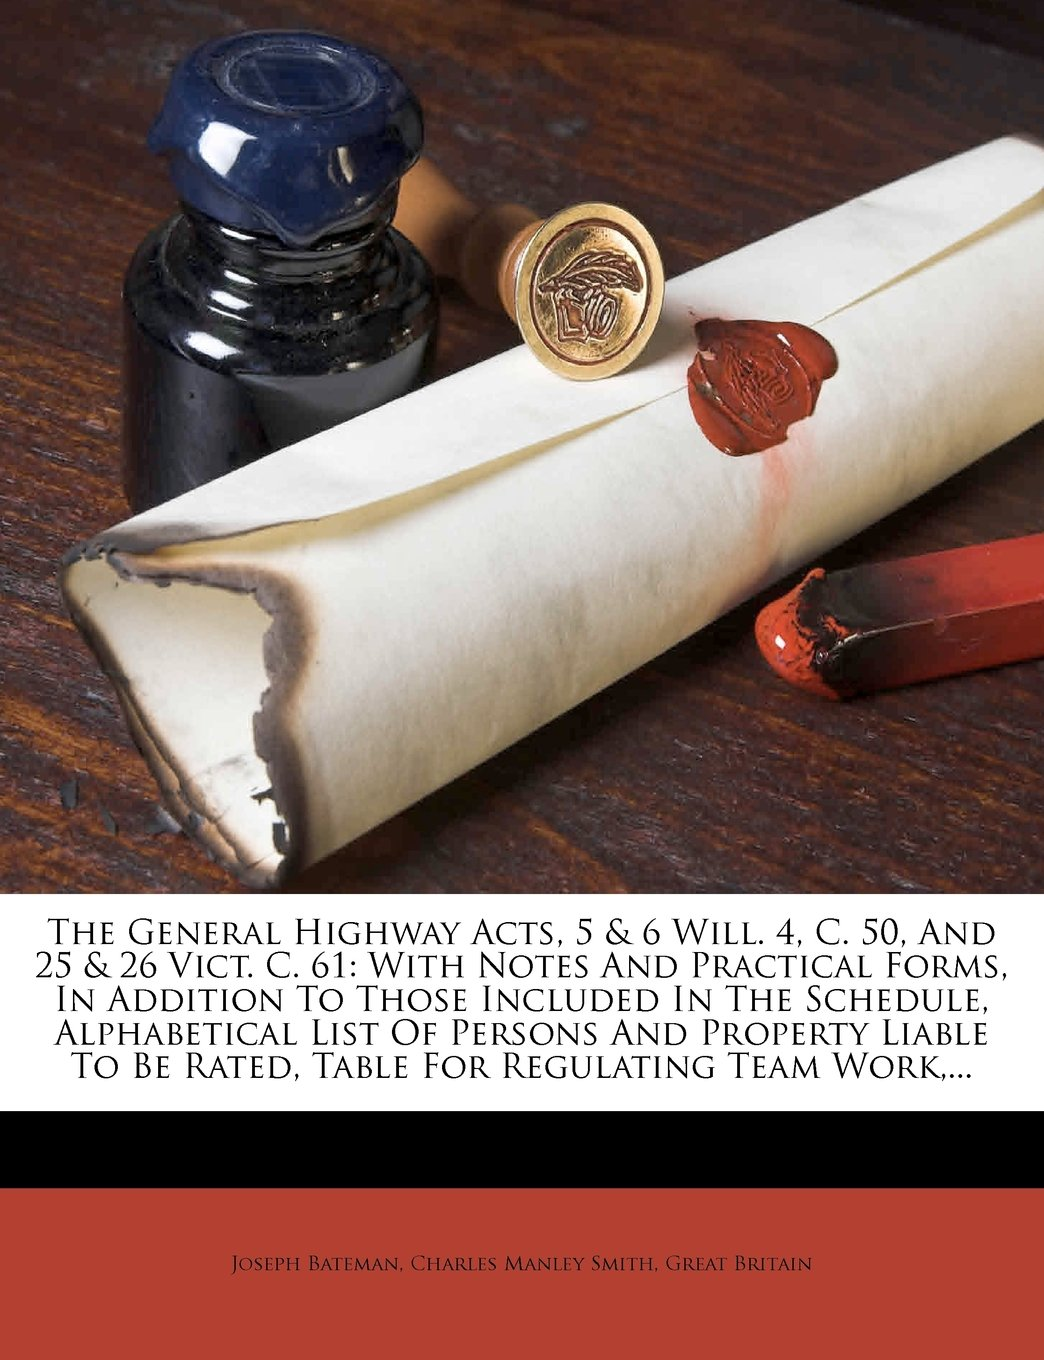 Download The General Highway Acts, 5 & 6 Will. 4, C. 50, And 25 & 26 Vict. C. 61: With Notes And Practical Forms, In Addition To Those Included In The ... Be Rated, Table For Regulating Team Work,... PDF